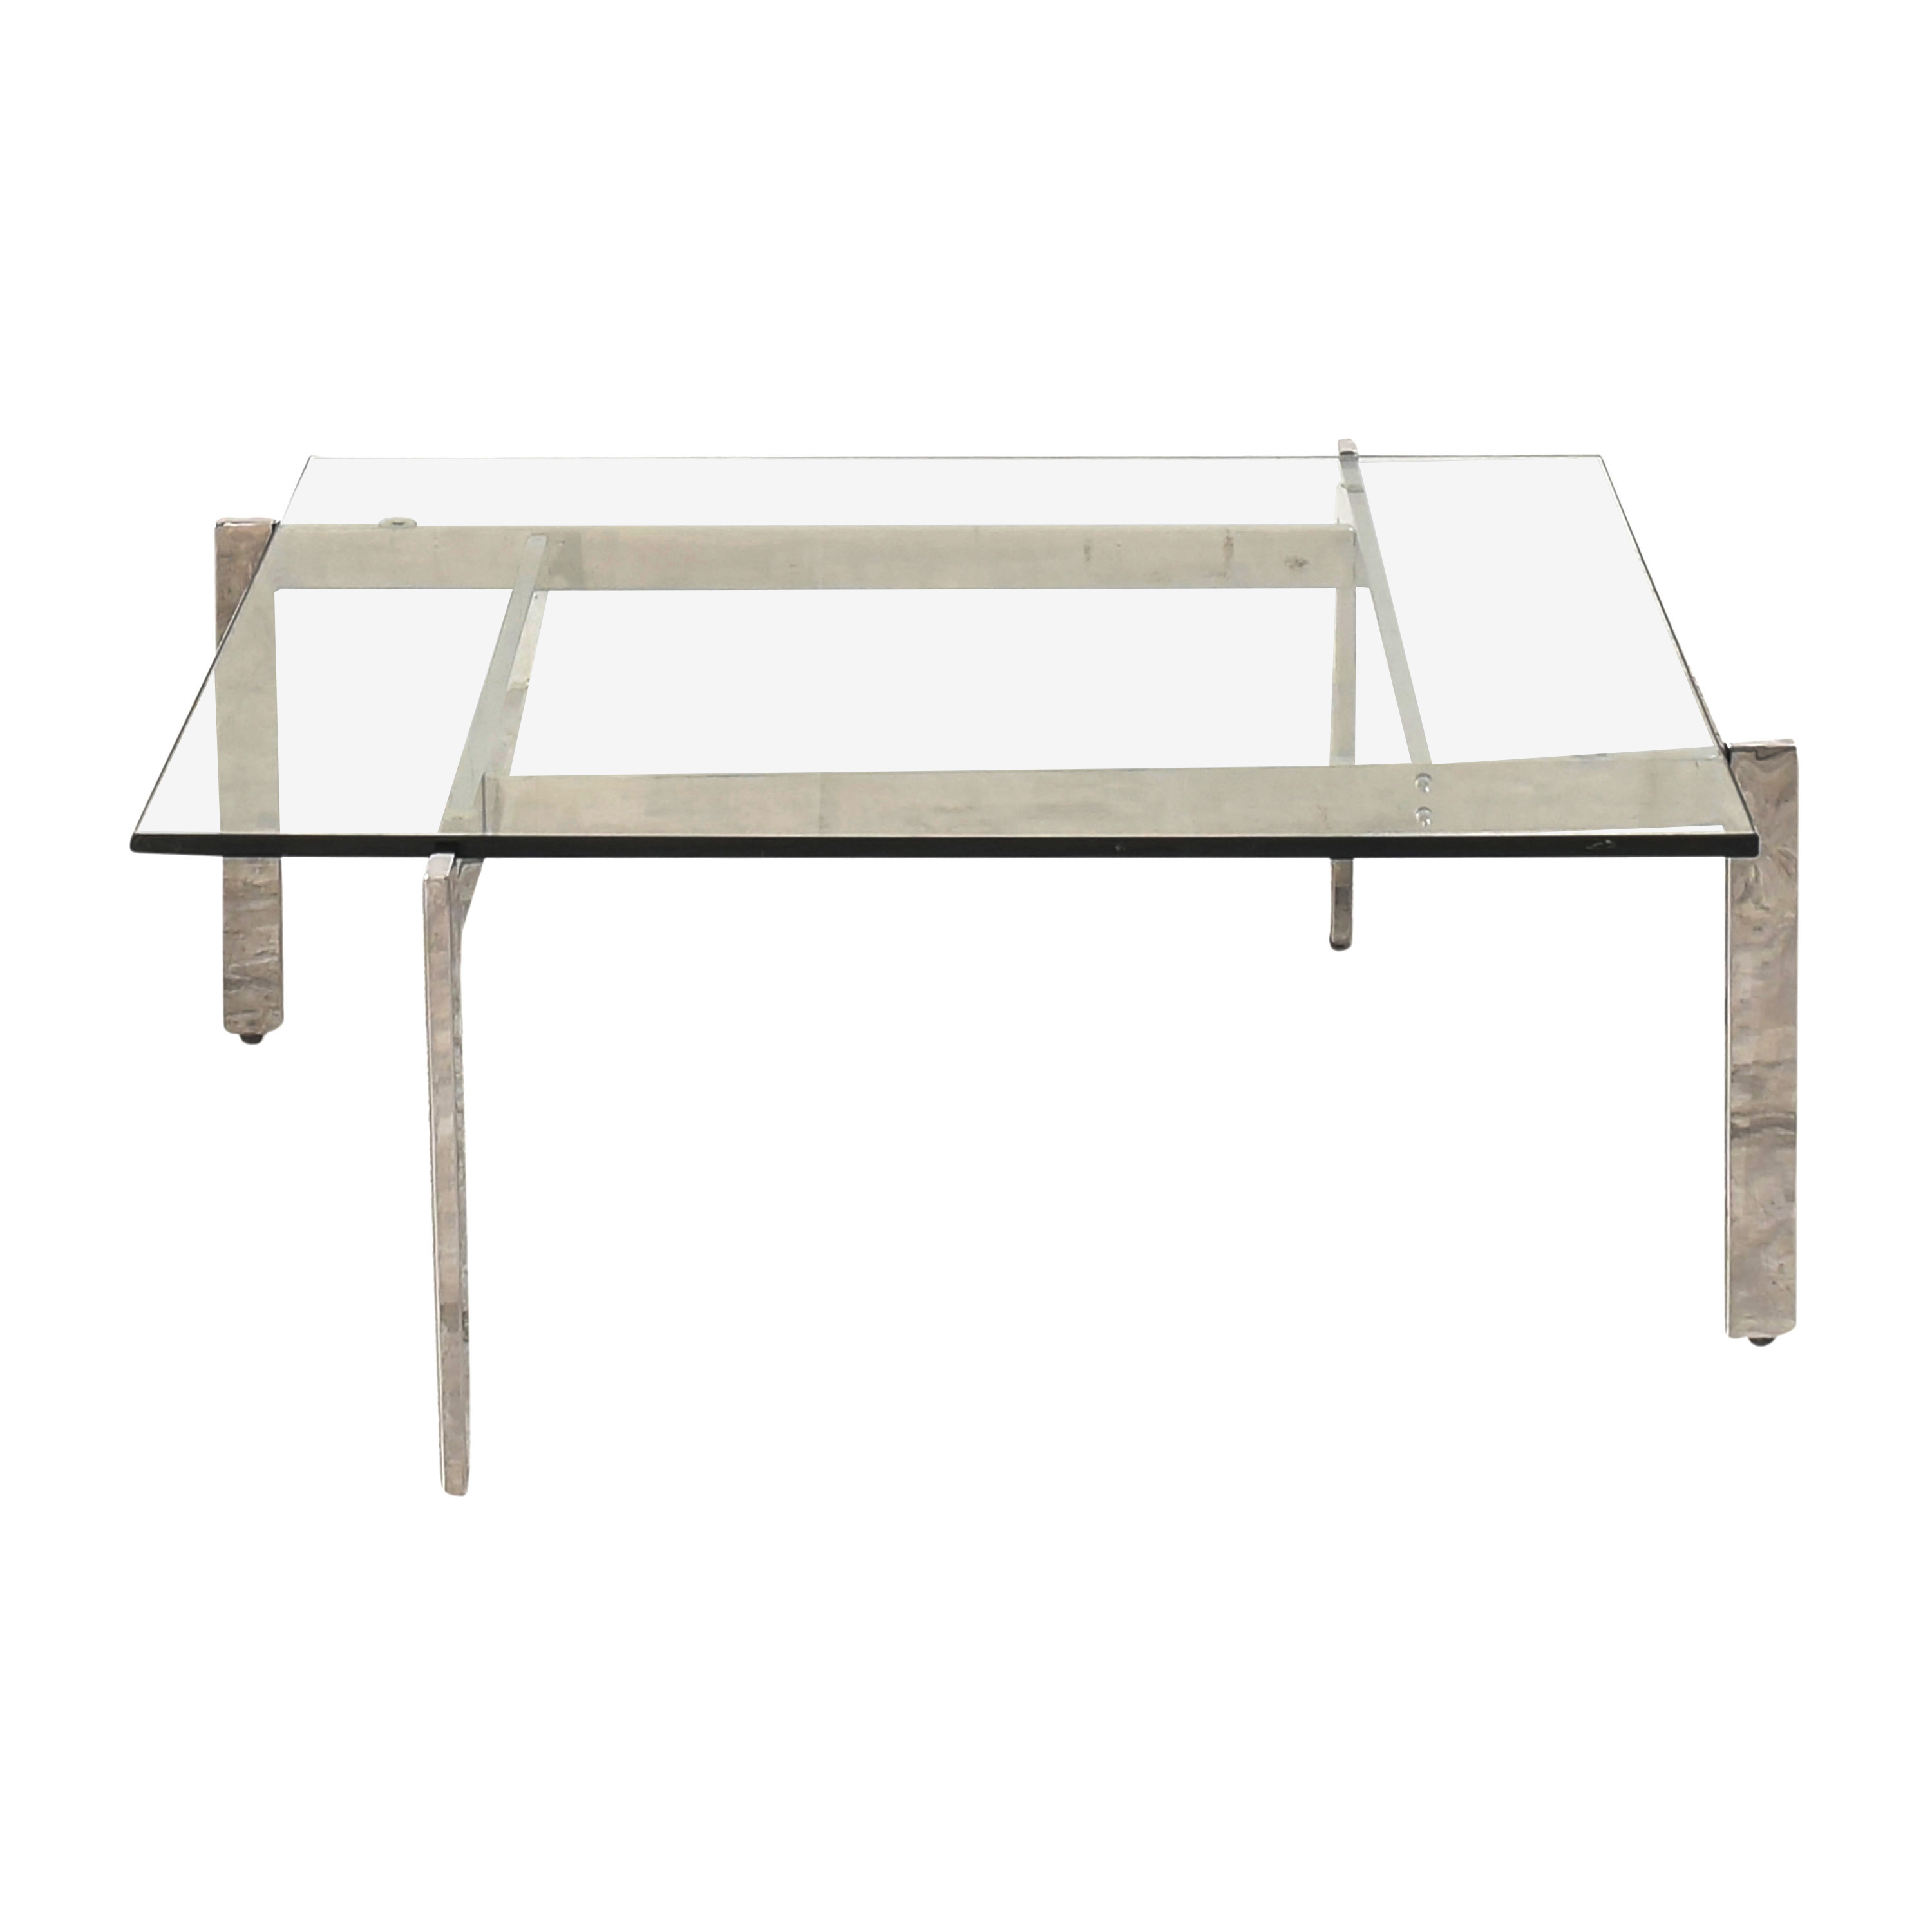 PK61-Style Coffee Table Tables